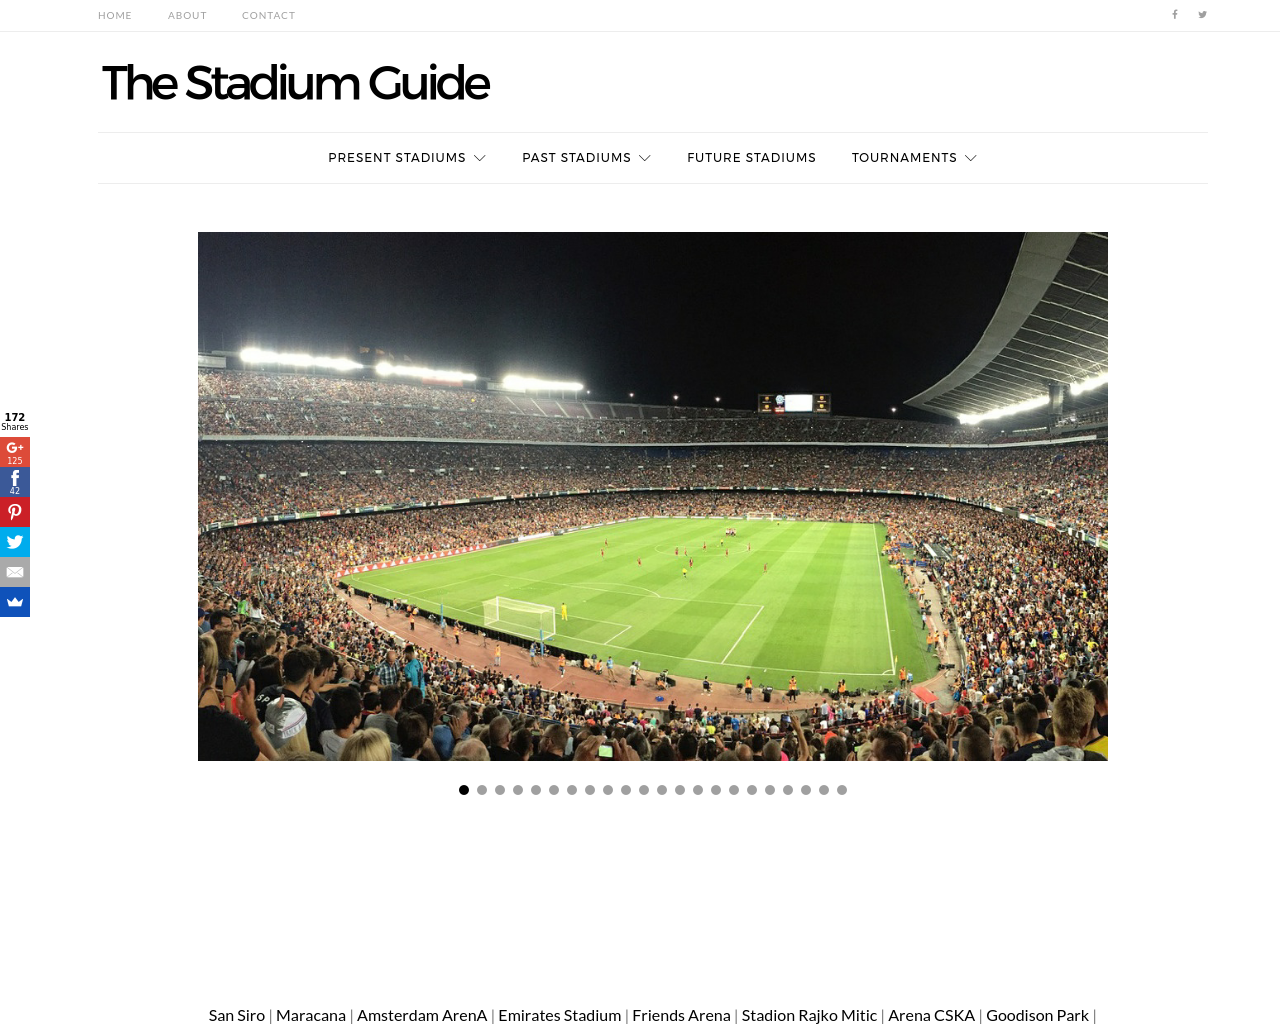 The-Stadium-Guide-Advertising-Reviews-Pricing